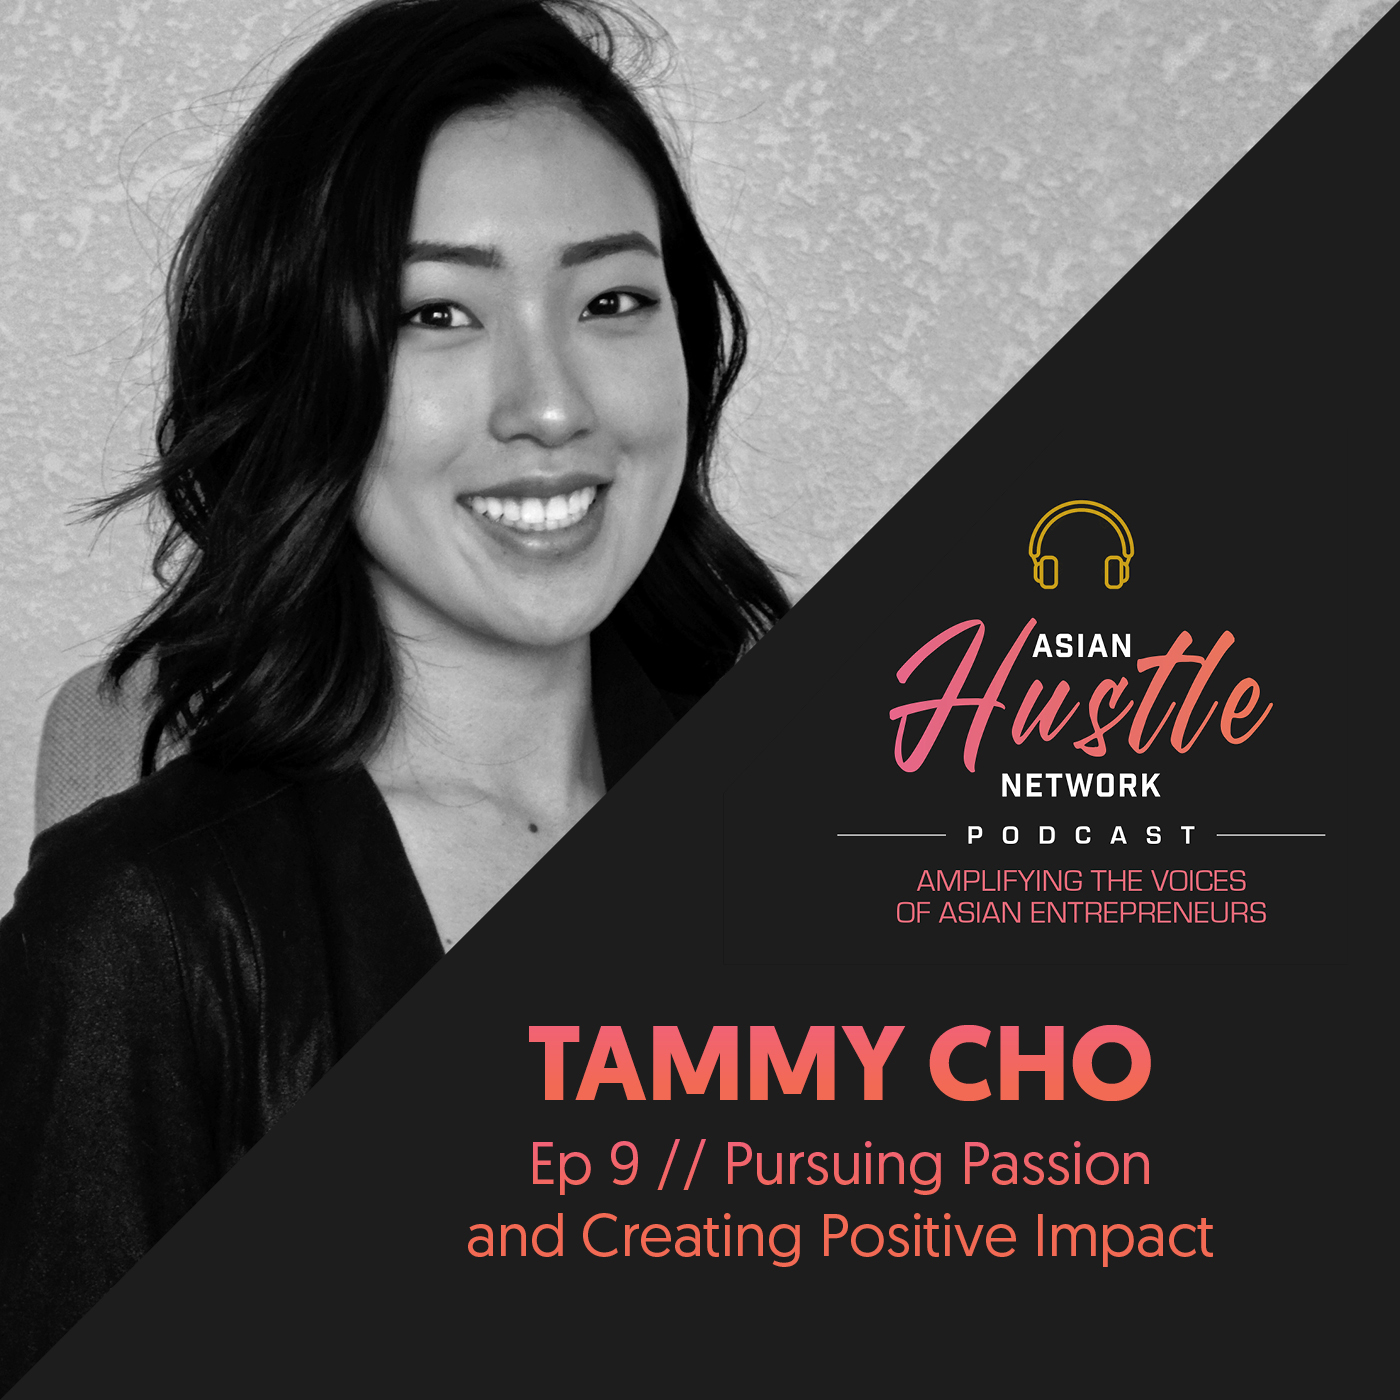 www.asianhustlenetwork.com: Tammy Cho // Ep 9 // Pursuing Passion and Creating Positive Impact